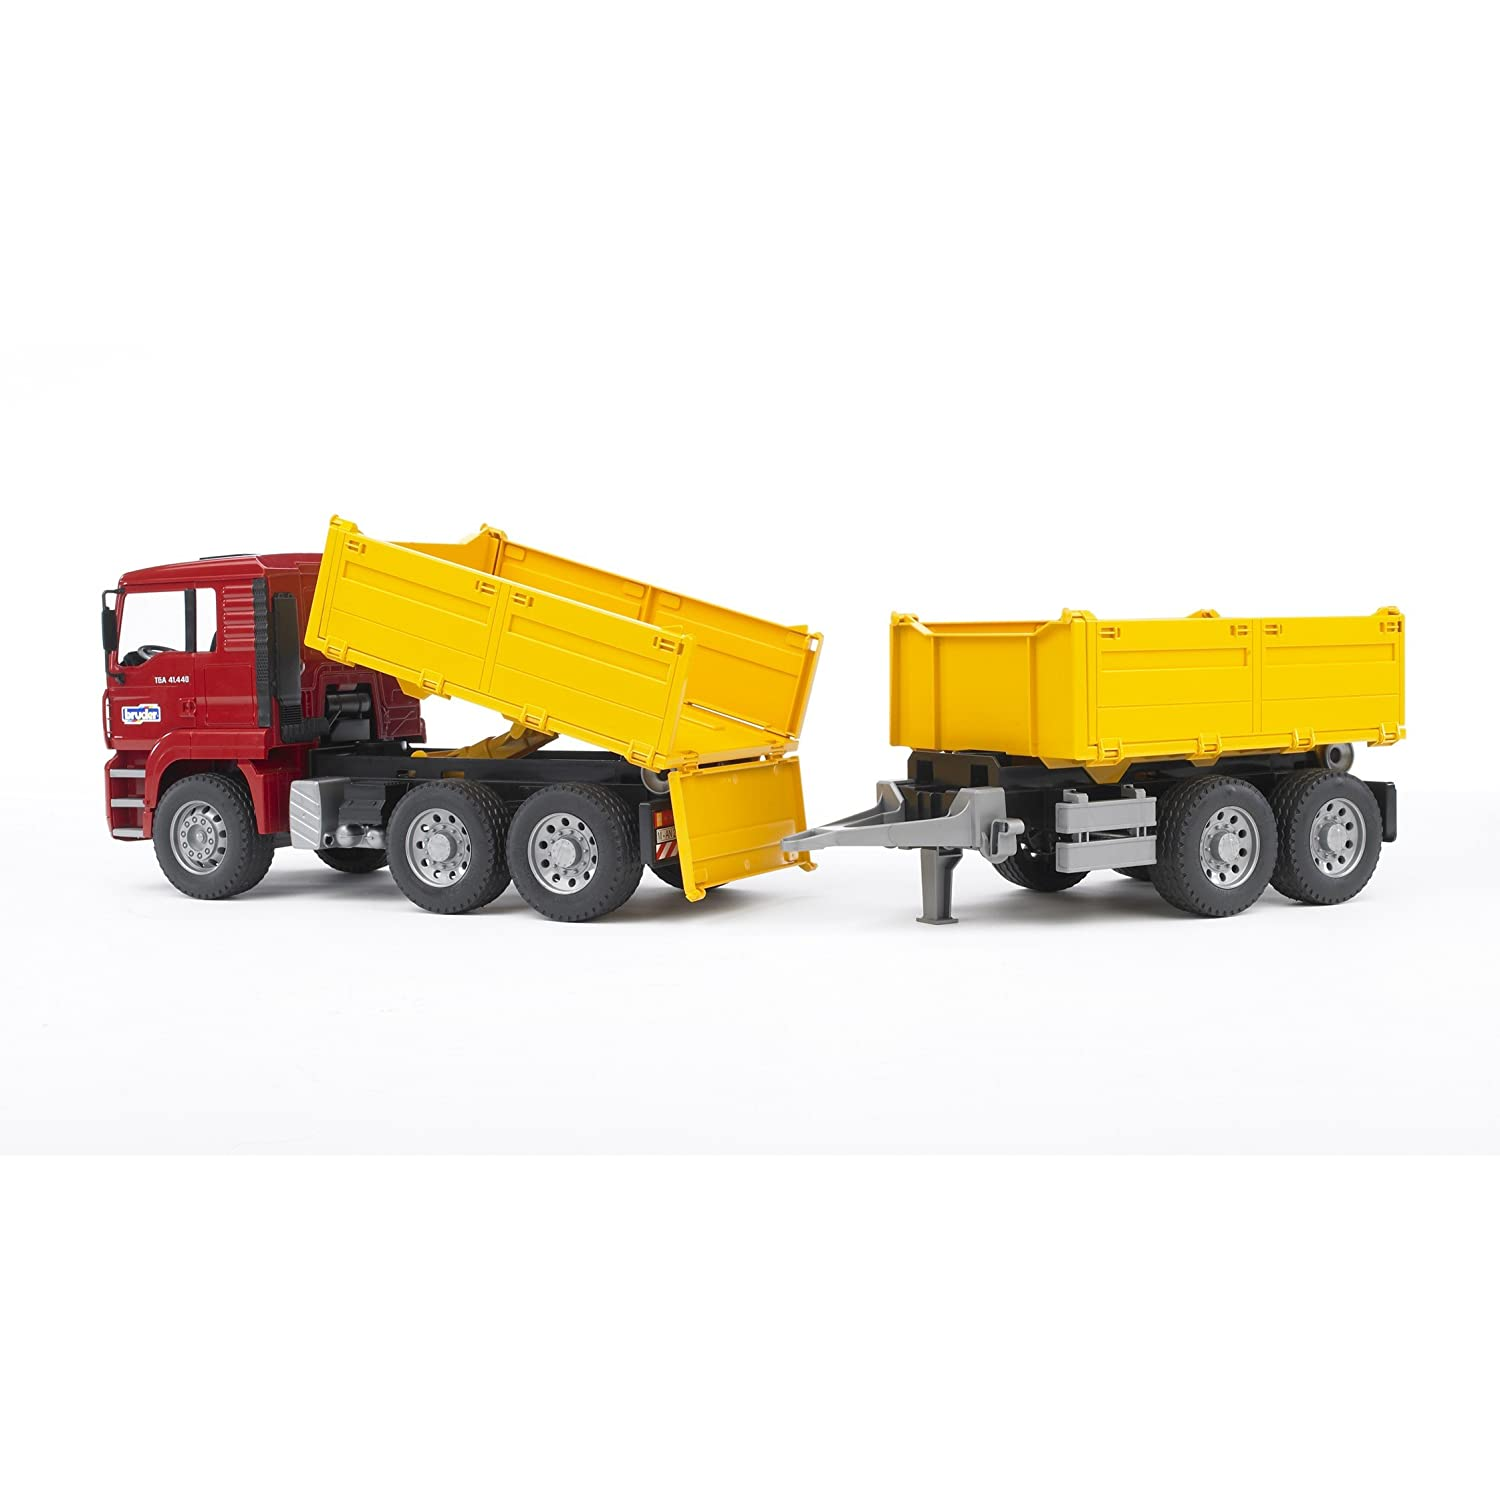 Bruder Construction Toys : Bruder toys man construction dump truck trailer tga